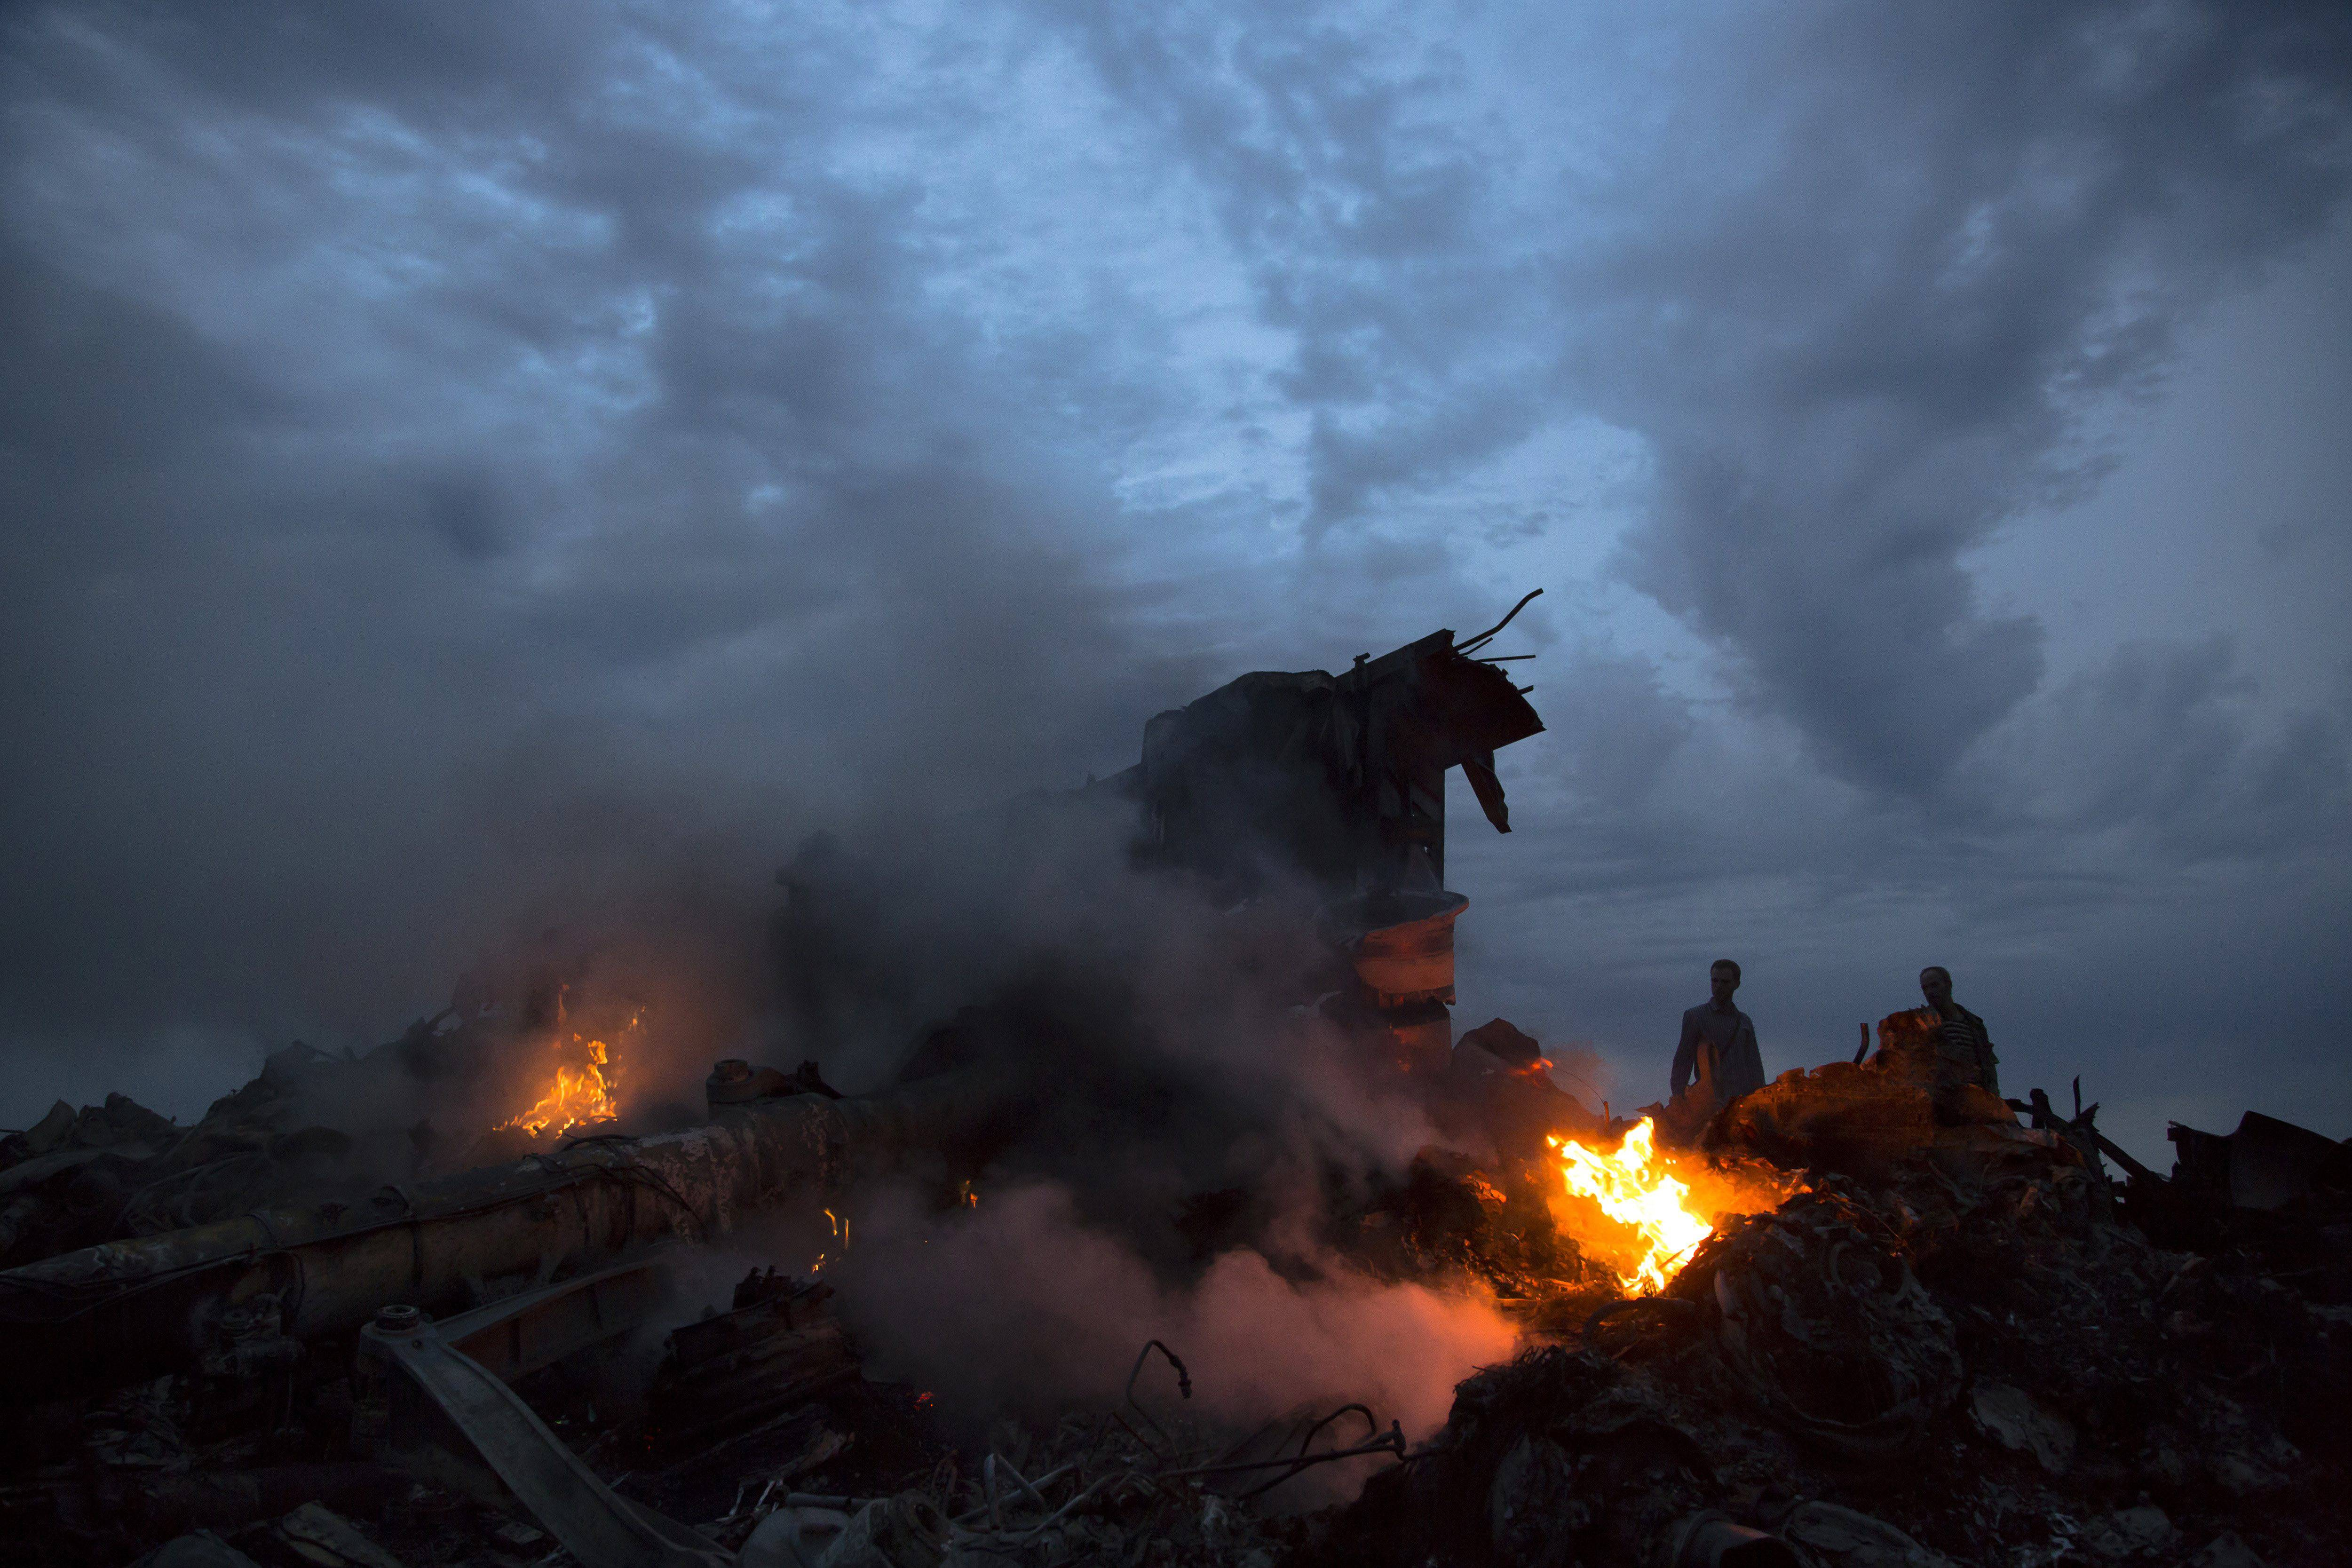 People walk amongst the debris Thursday at the crash site of a passenger plane near the village of Grabovo, Ukraine. Ukraine said a passenger plane carrying 298 people was shot down Thursday as it flew over the country, and both the government and the pro-Russia separatists fighting in the region denied any responsibility for downing the plane.